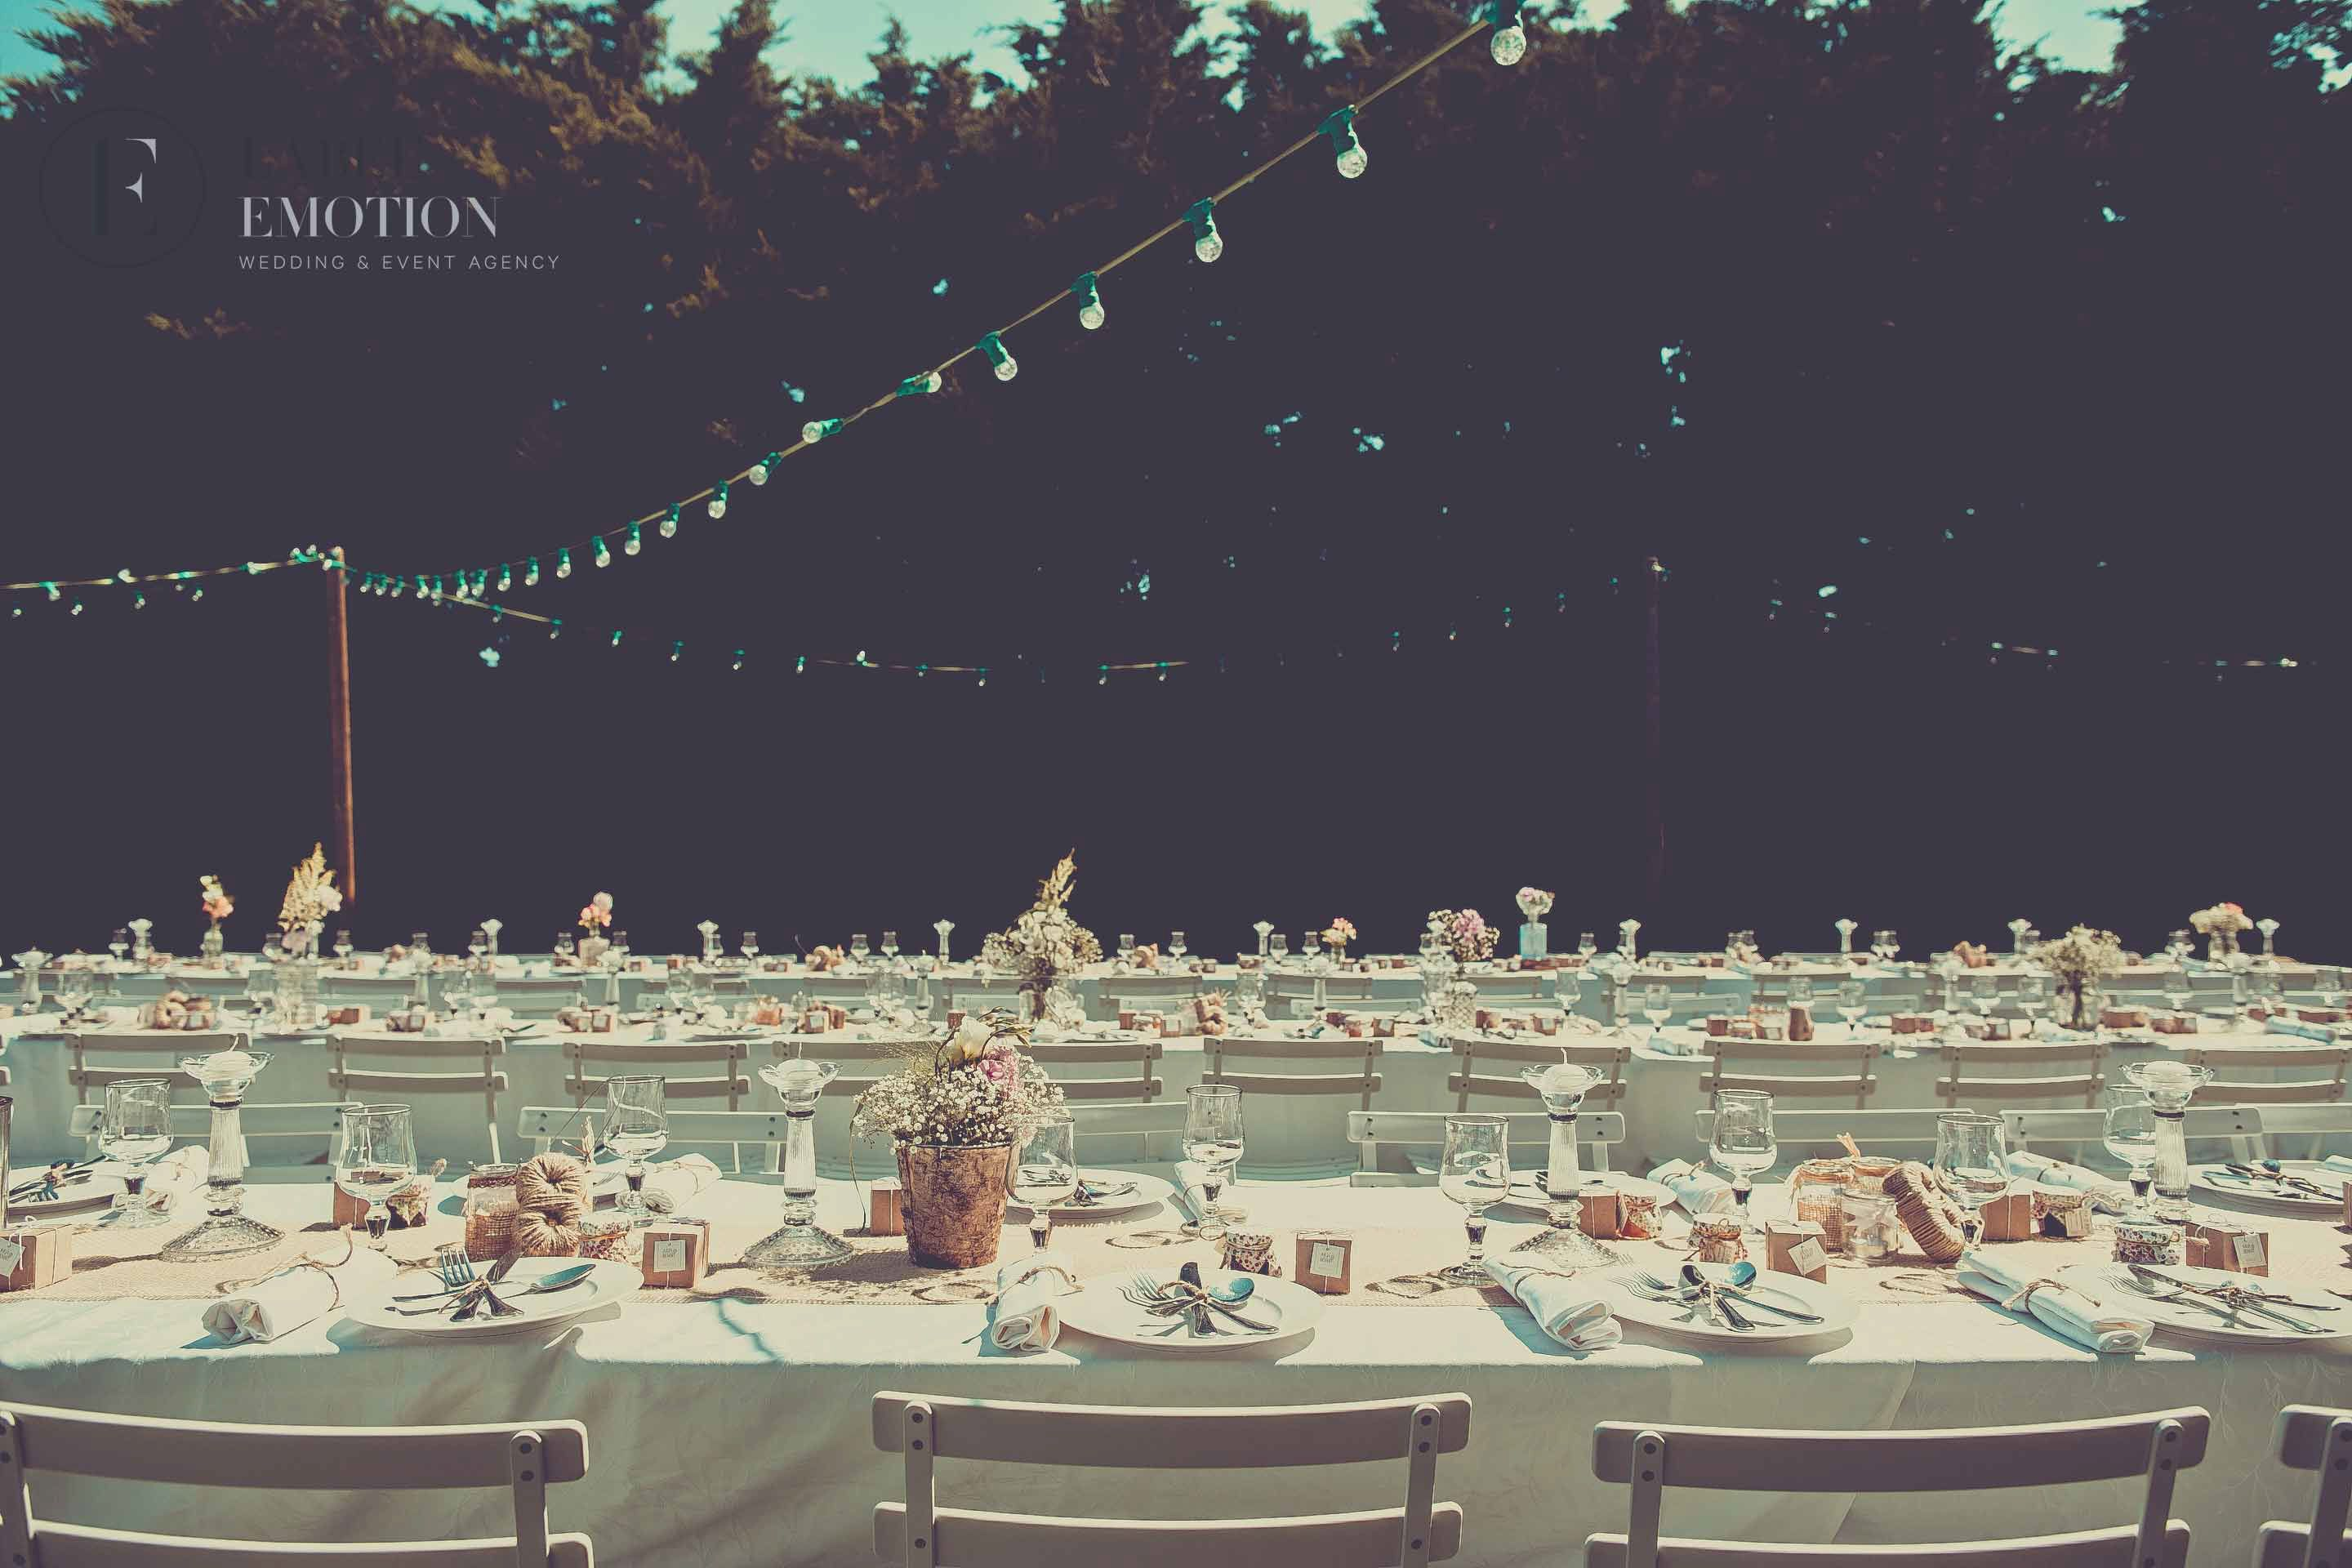 Retro wedding decoration by label emotion provence wedding event retro wedding decoration by label emotion provence wedding event agency vintage table for junglespirit Choice Image